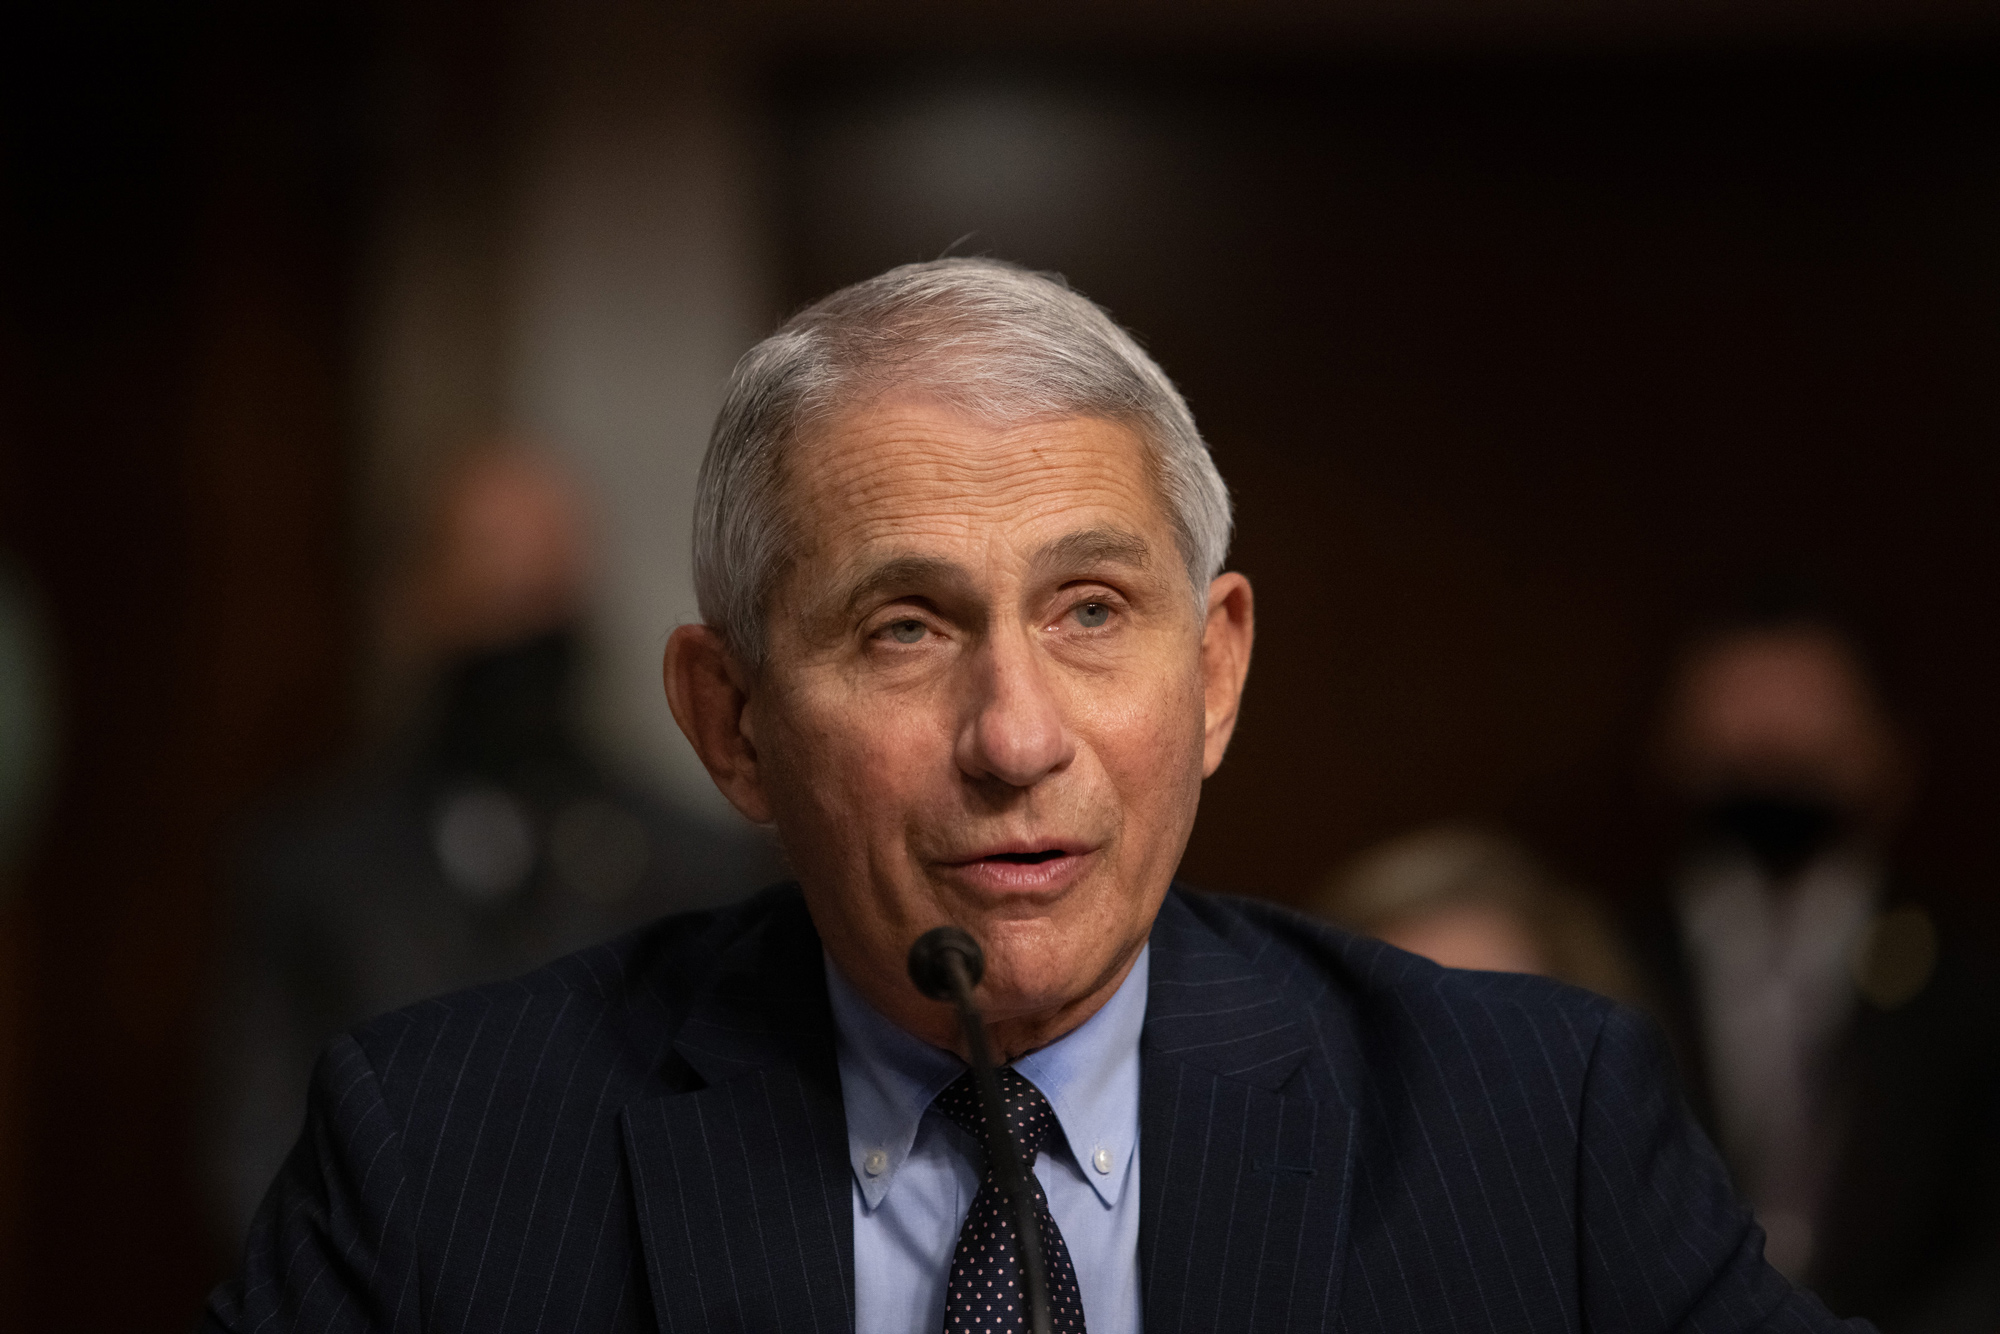 Dr. Anthony Fauci, Director of the National Institute of Allergy and Infectious Diseases at the National Institutes of Health, testifies during a US Senate Health, Education, Labor, and Pensions Committee hearing in Washington, DC, on September 23.